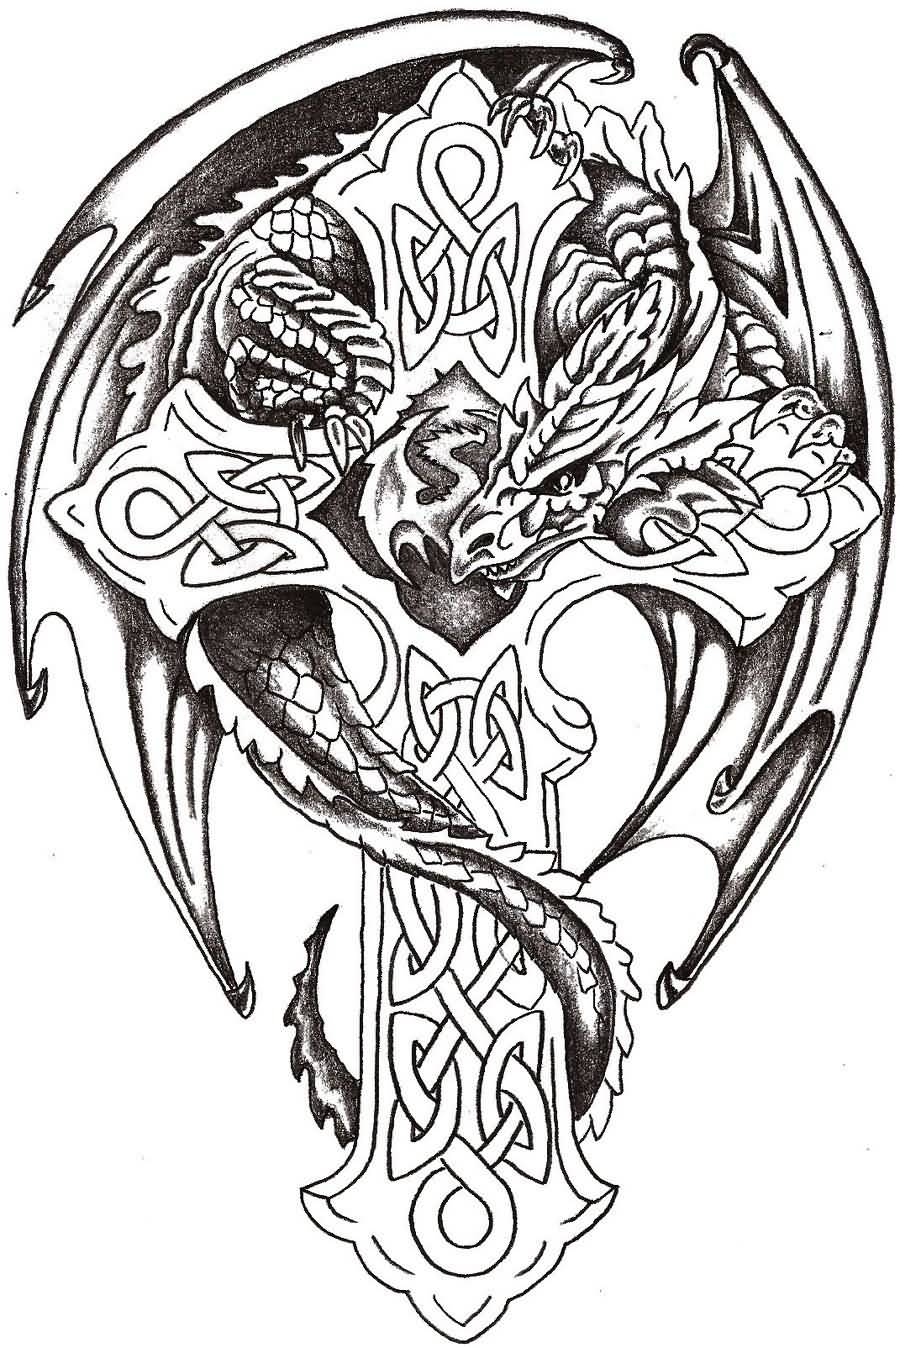 Black Ink Dragon With Celtic Cross Tattoo Design By Steve Laube